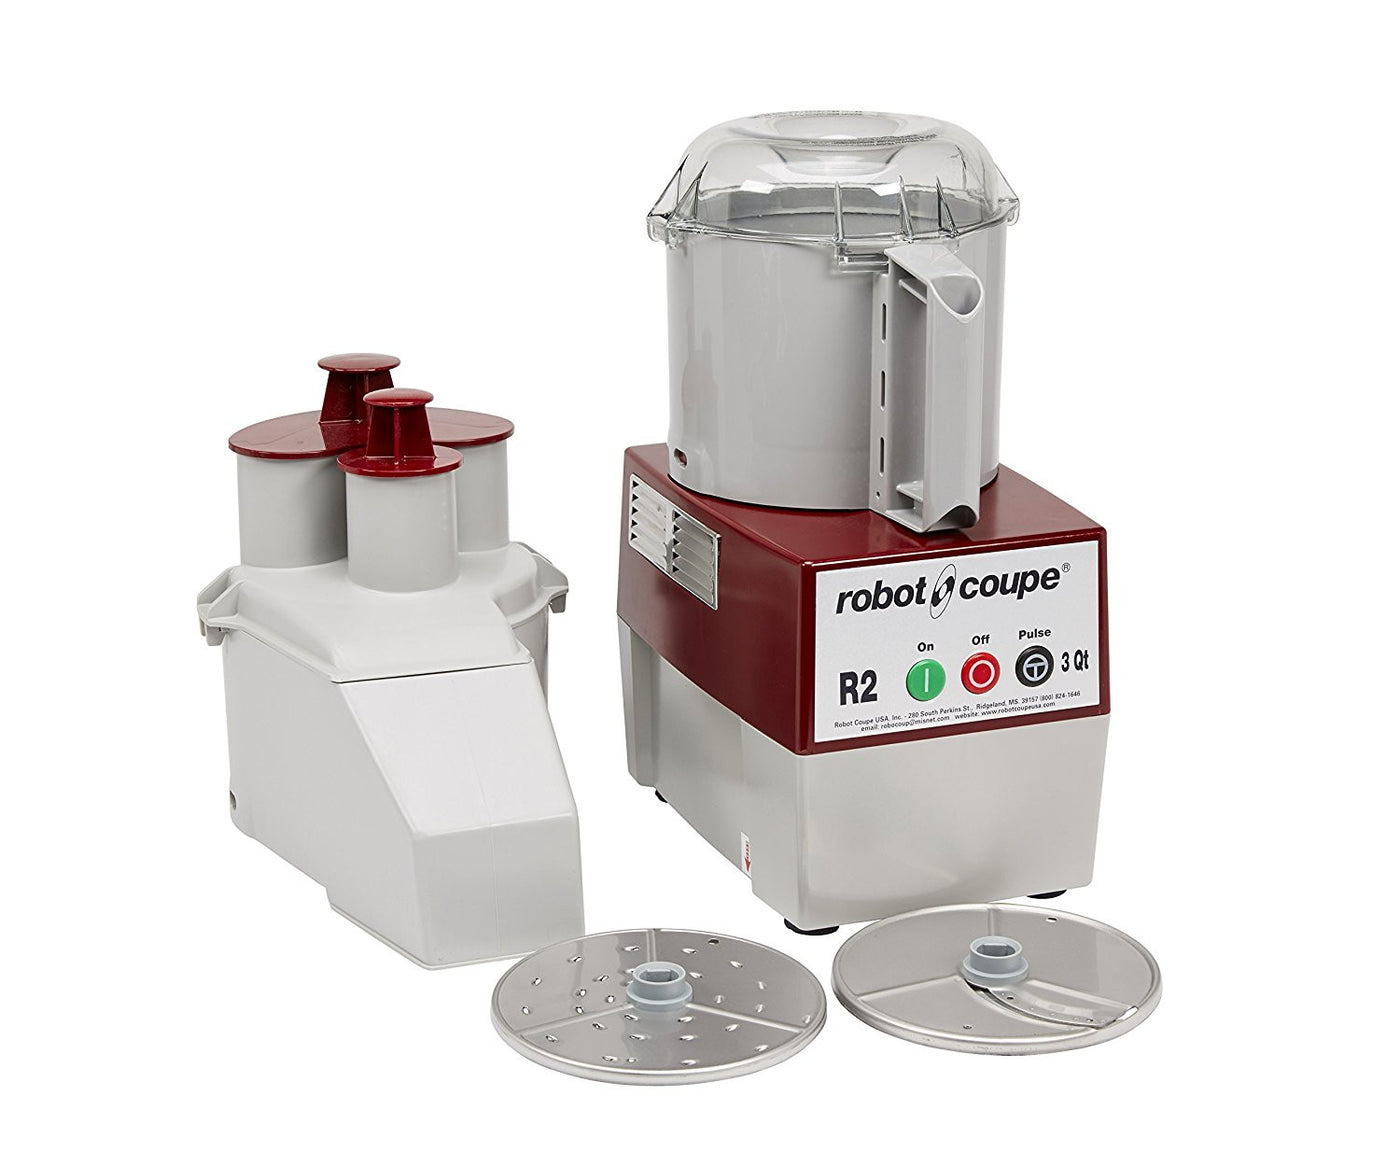 ... Robot Coupe R2N Continuous Feed Combination Food Processor With 3 Quart  Bowl   120V   MY